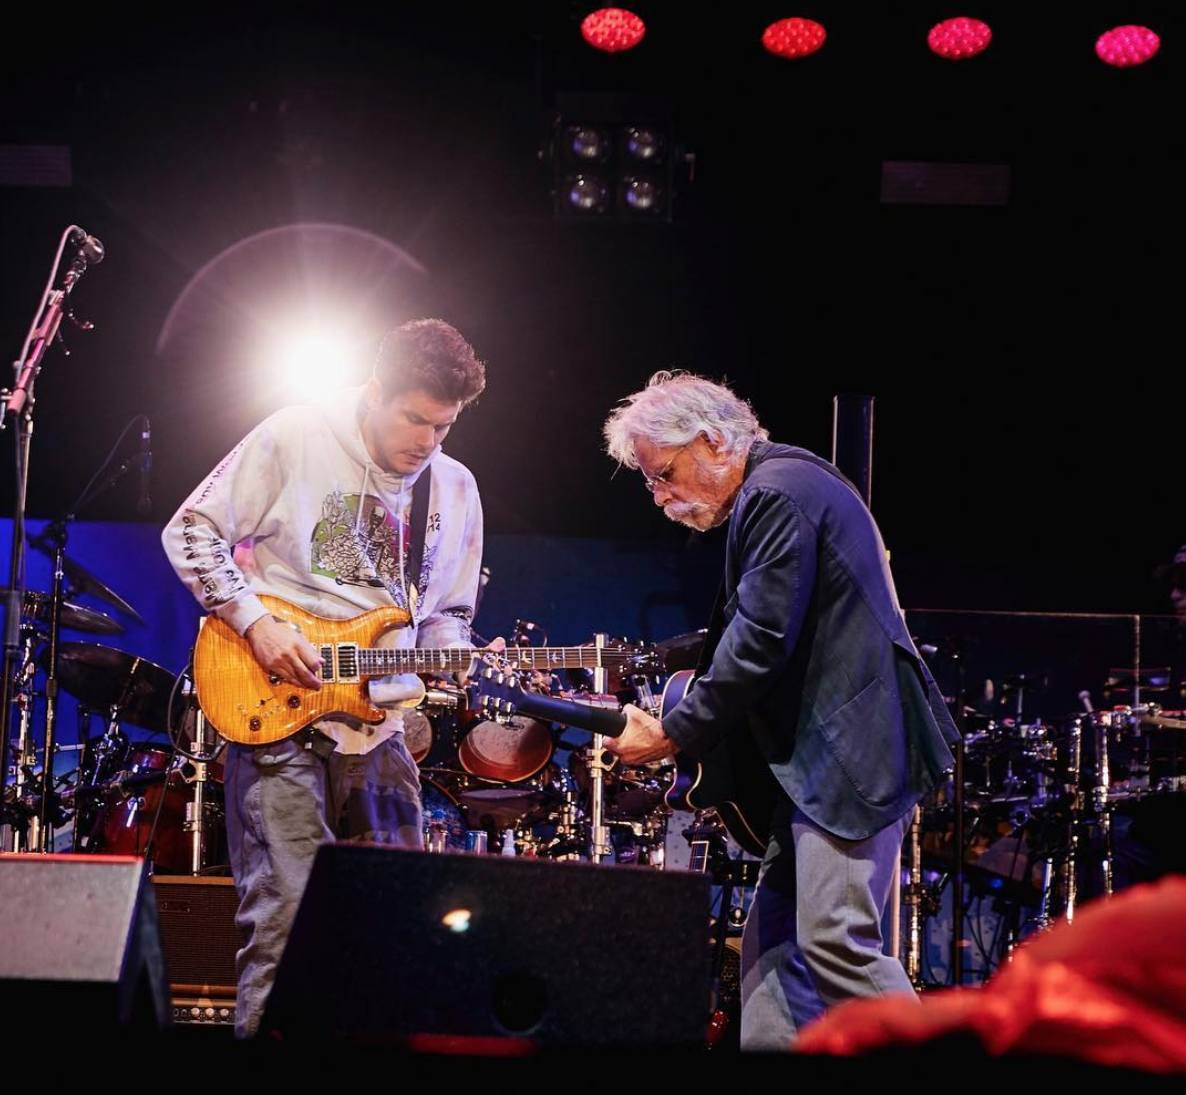 John Mayer and Bob Weir of Dead & Company IG: @johnmayer